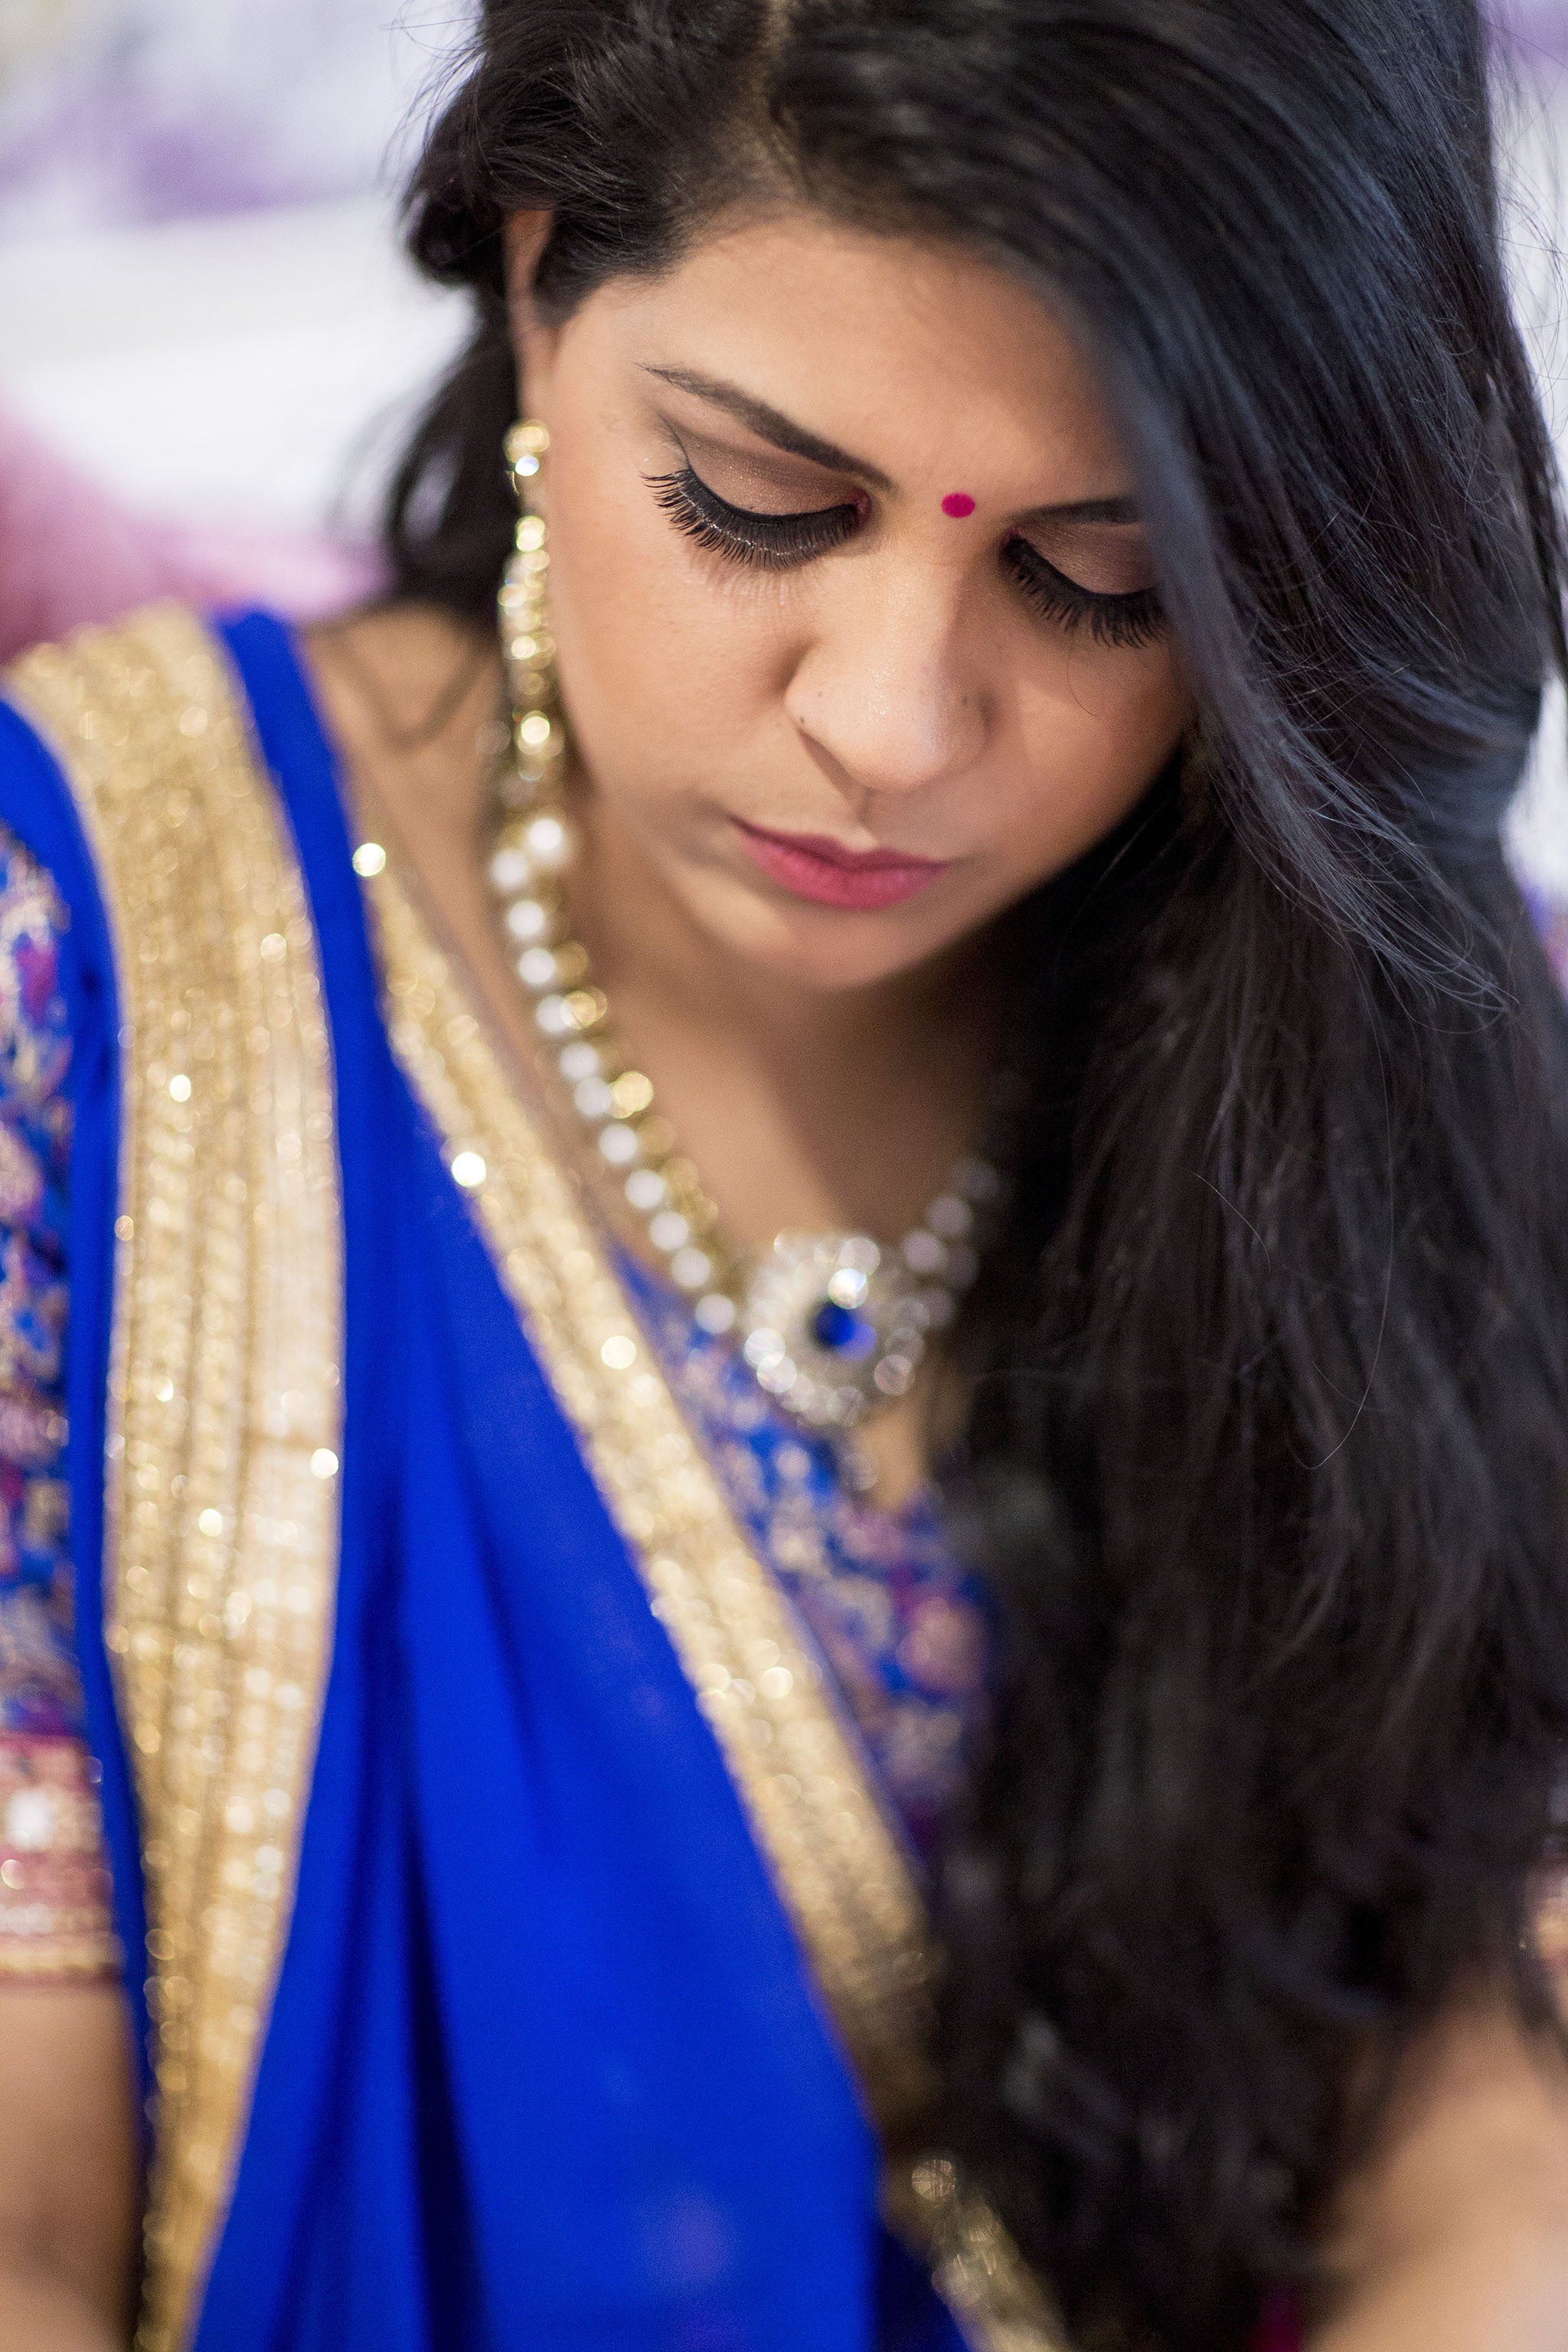 elizabethgphotography_kingslangley_hertfordshire_fineart_indian_wedding_mehndi_photography_jigna_bhuja_04.jpg